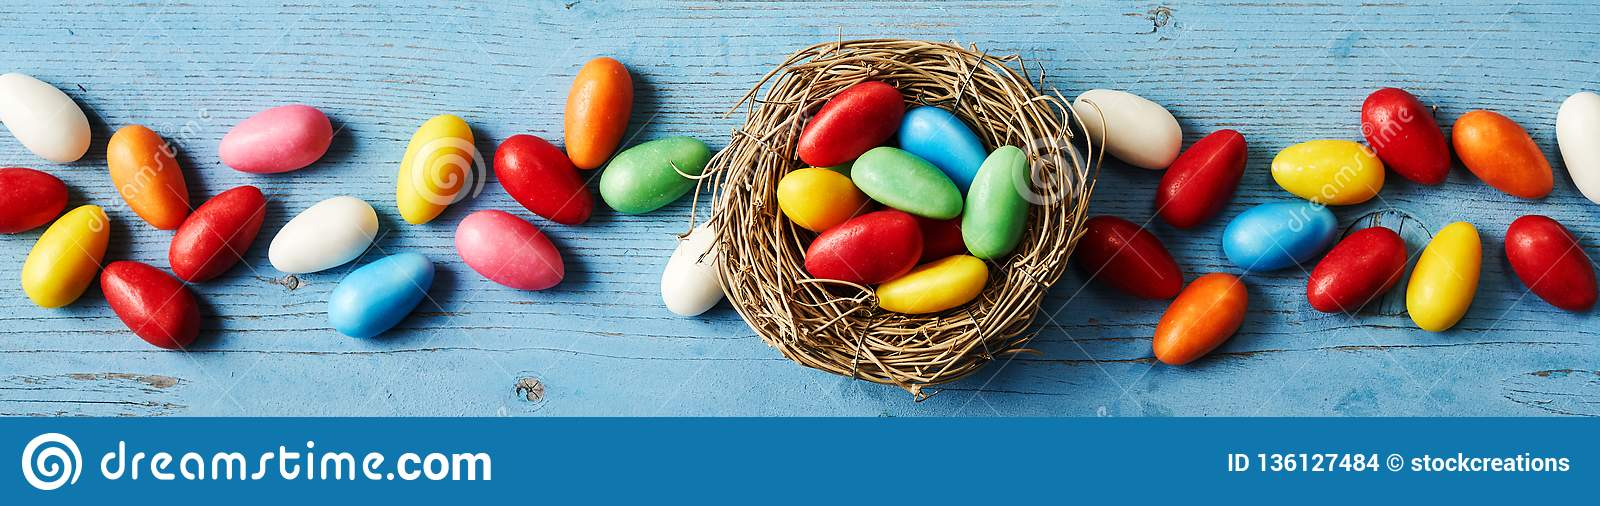 Banner of colorful candies for Easter